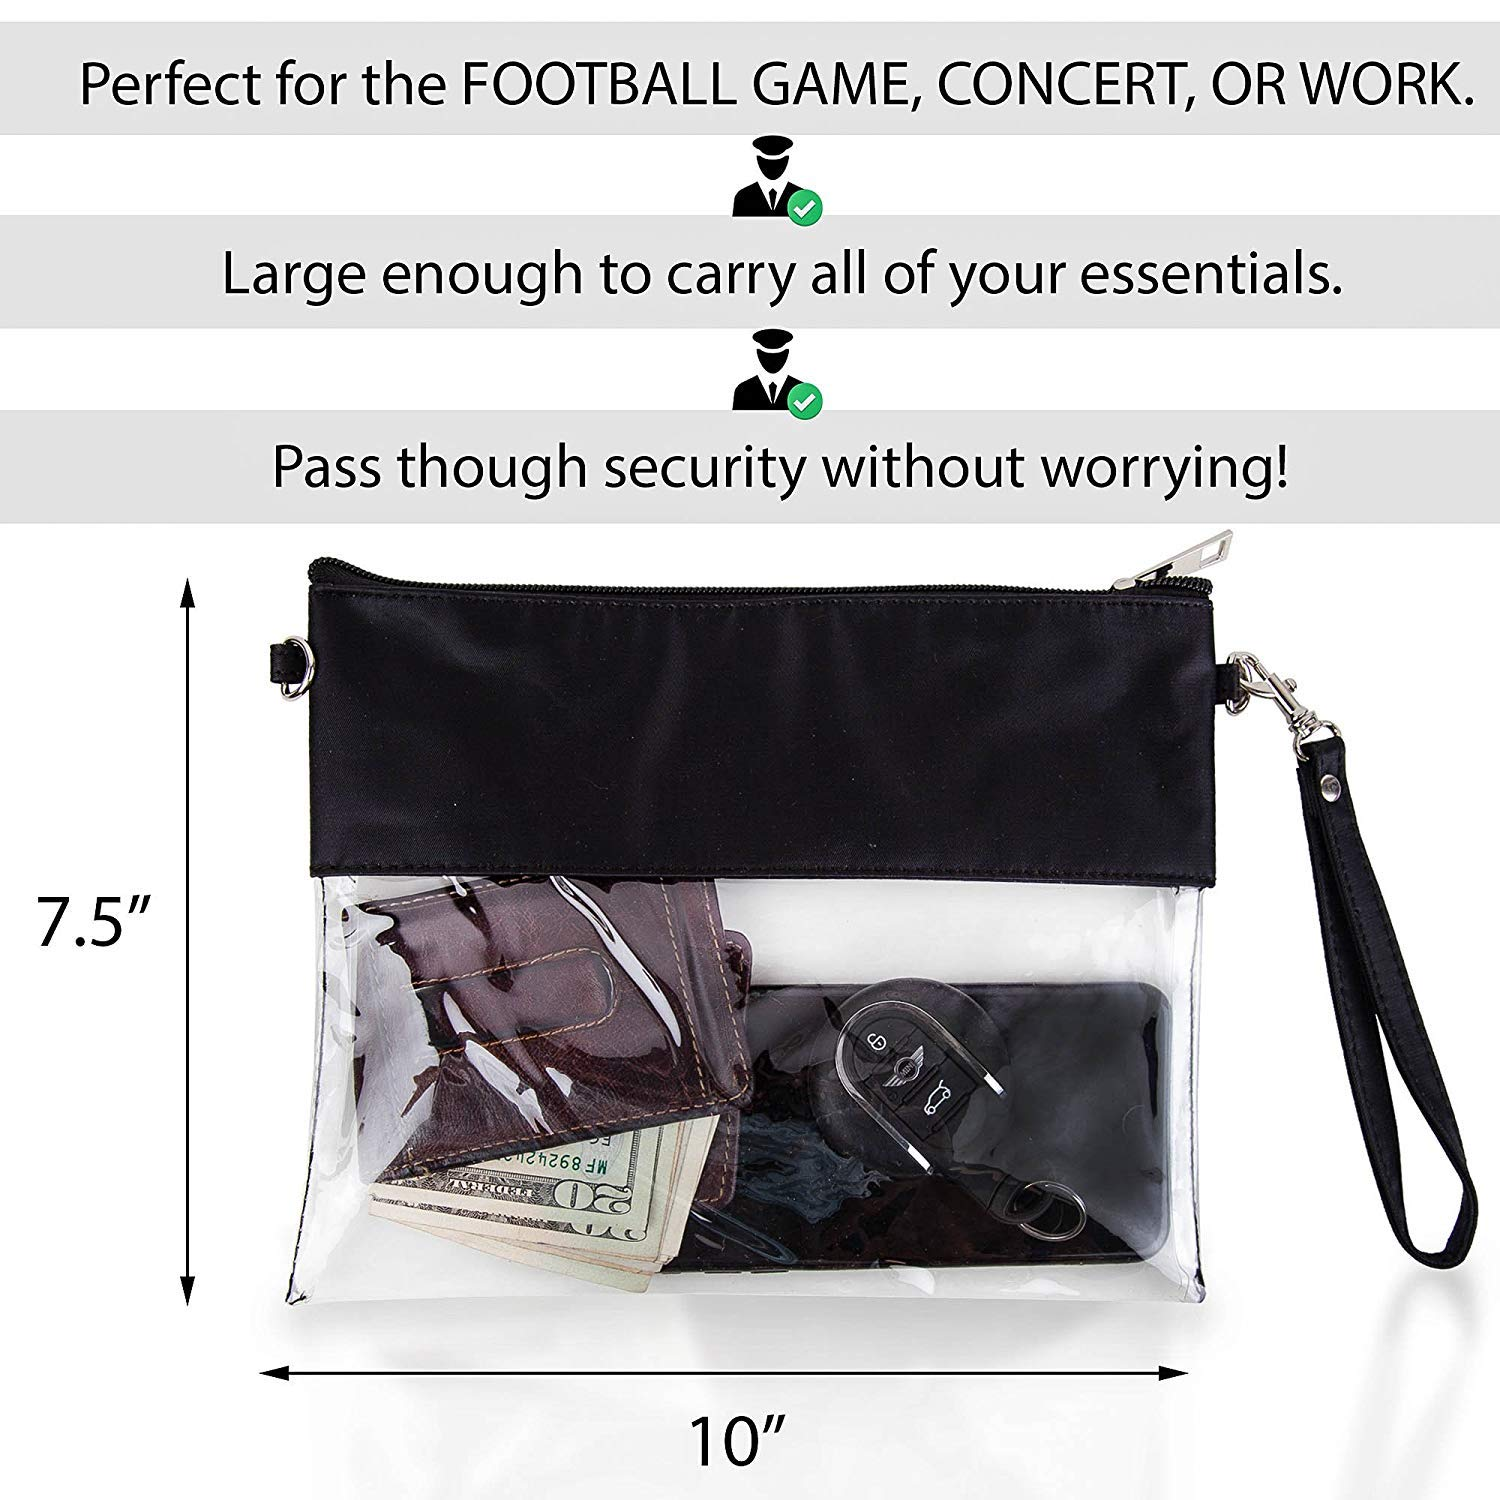 MONOBLANKS Clear Zip Pouch with Detachable Crossbody Adjustable Strap and Wristlet (Purple) by MONOBLANKS (Image #5)